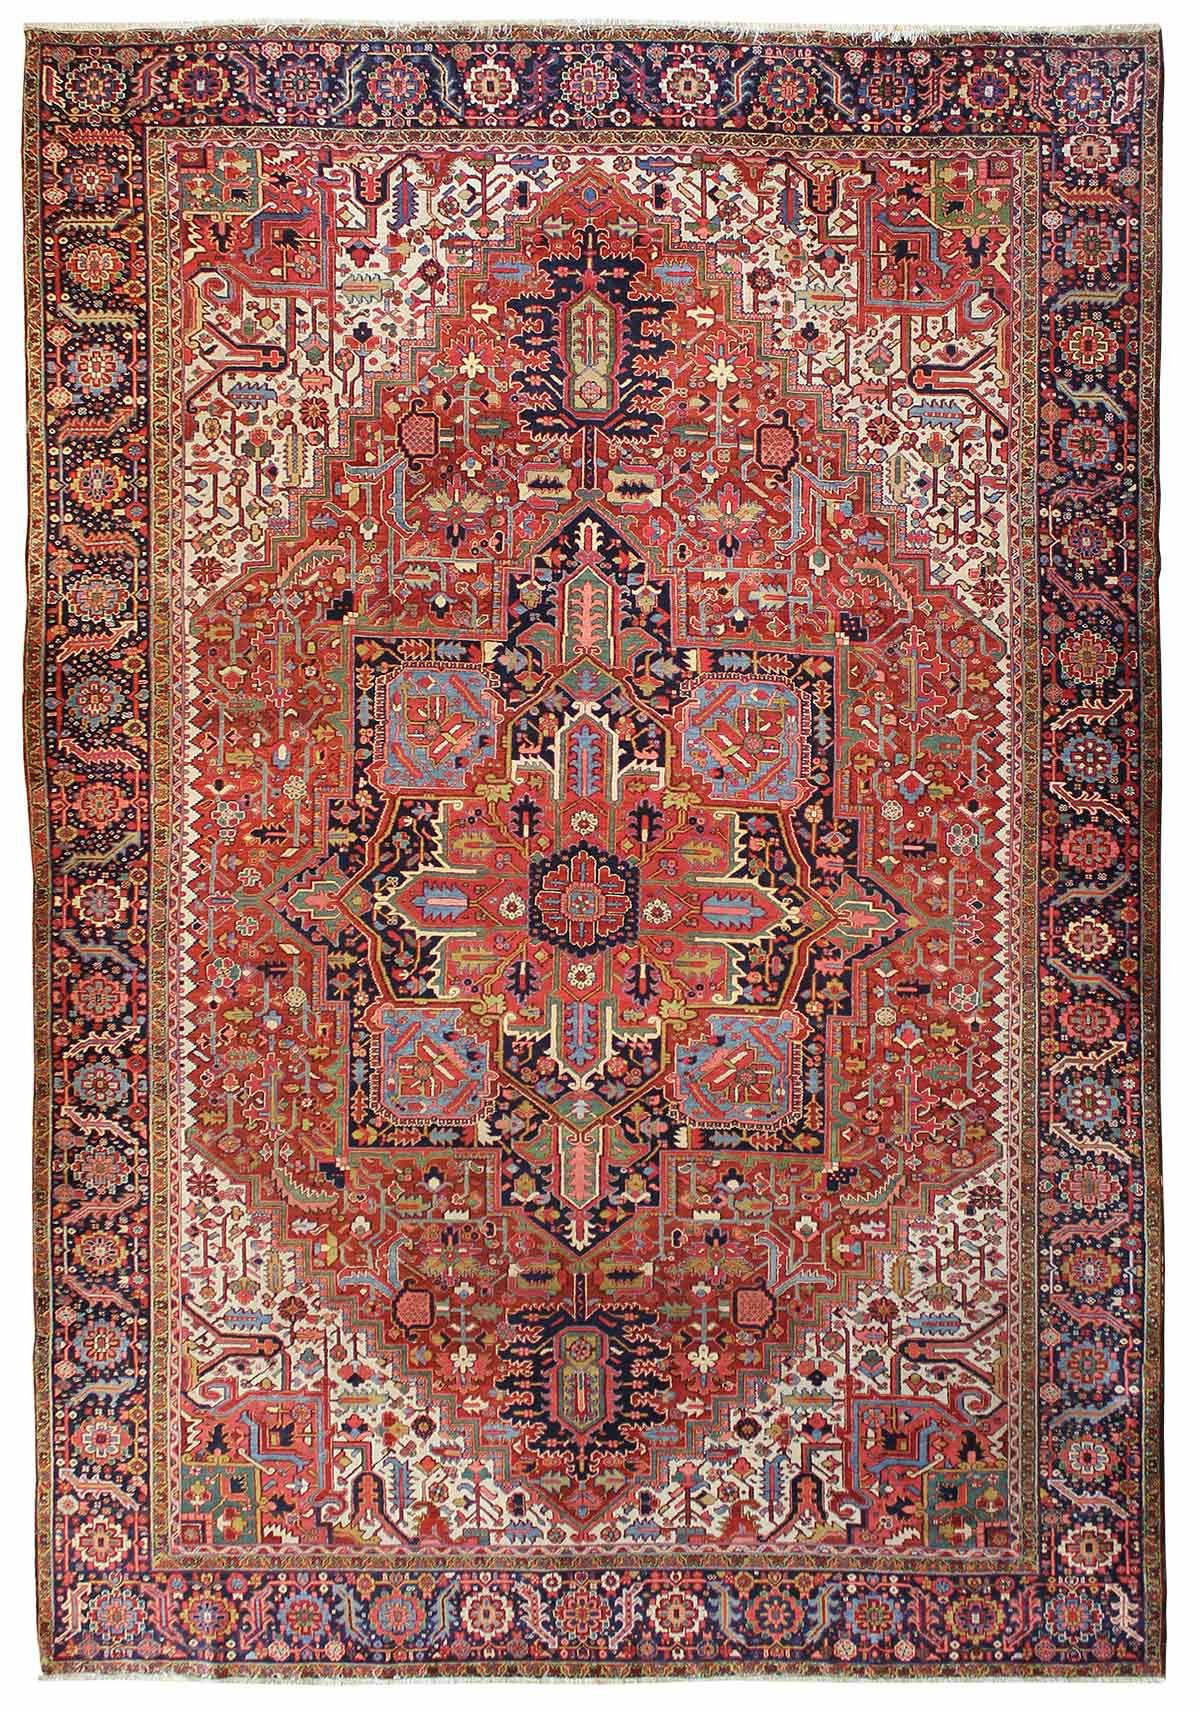 Antique Heriz & Serapi Rugs Gallery: Antique Heriz Rug, Hand